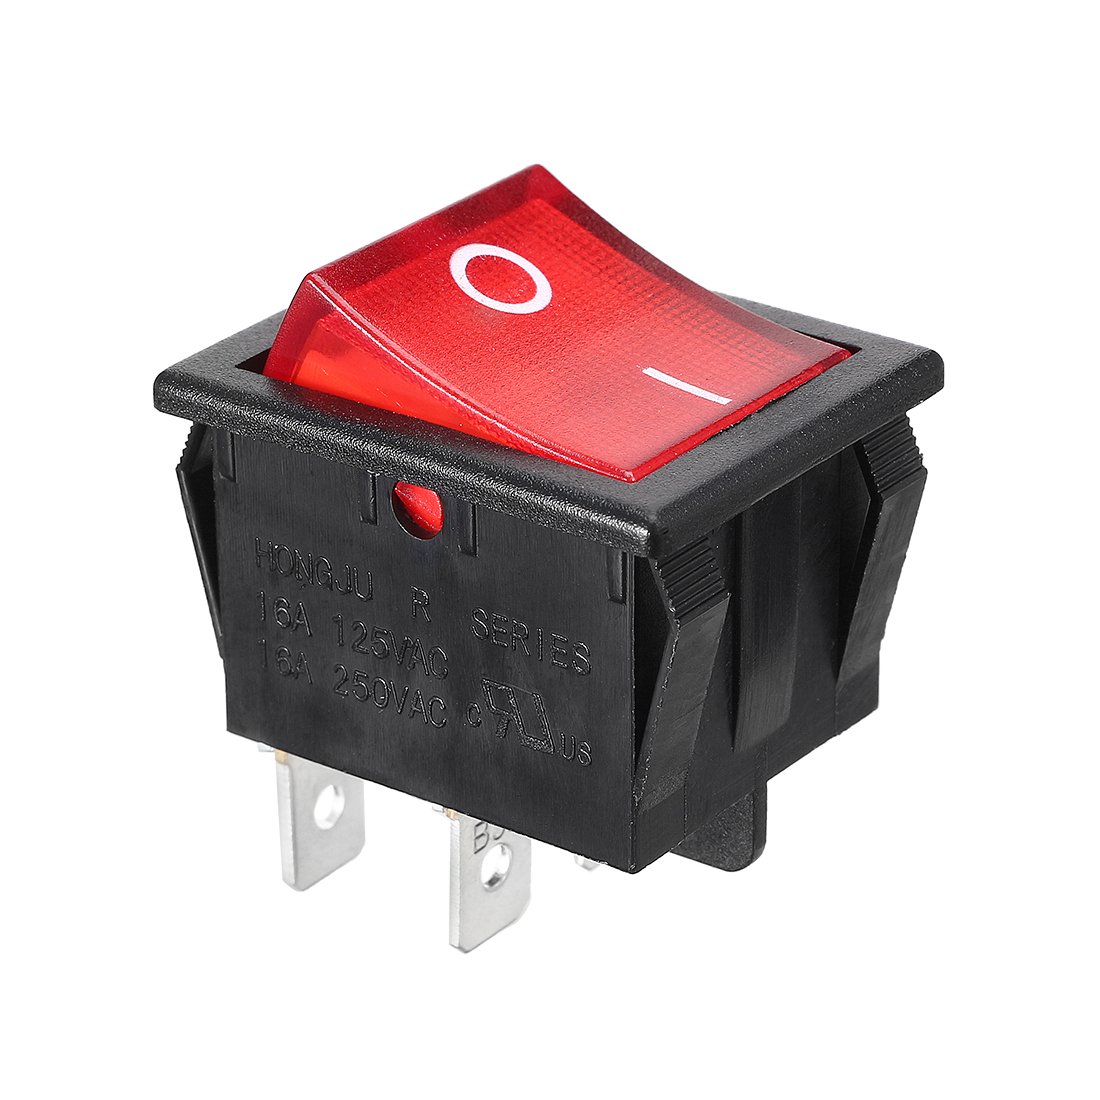 Red Light Illuminated DPST ON/OFF Snap In Rocker Switch 16A 250V AC